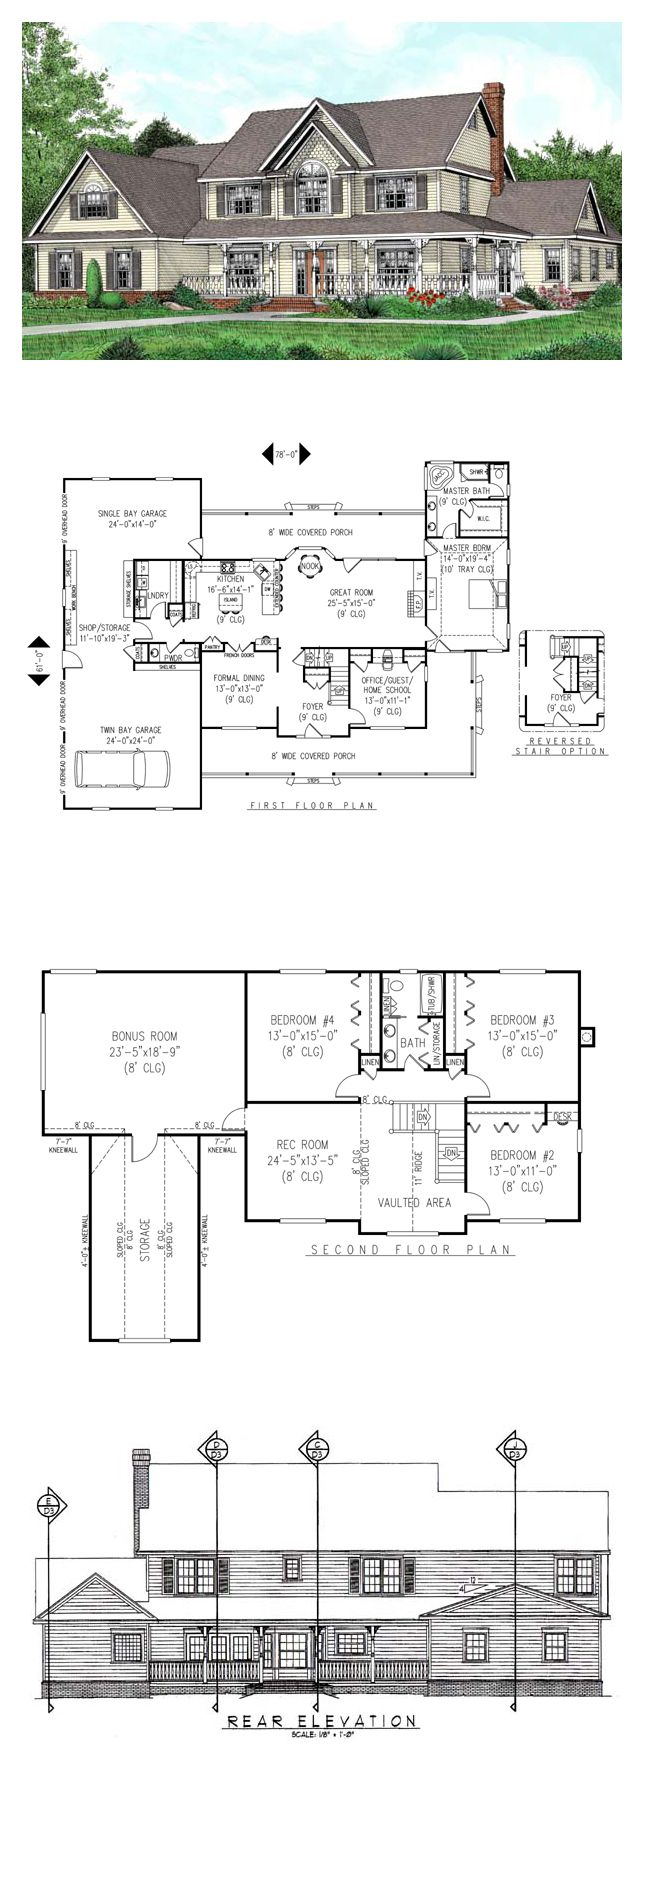 This is the house i want ive found it country house plan 96841 total living area 3005 sq ft 5 bedrooms 2 5 bathrooms houseplan countrystyle